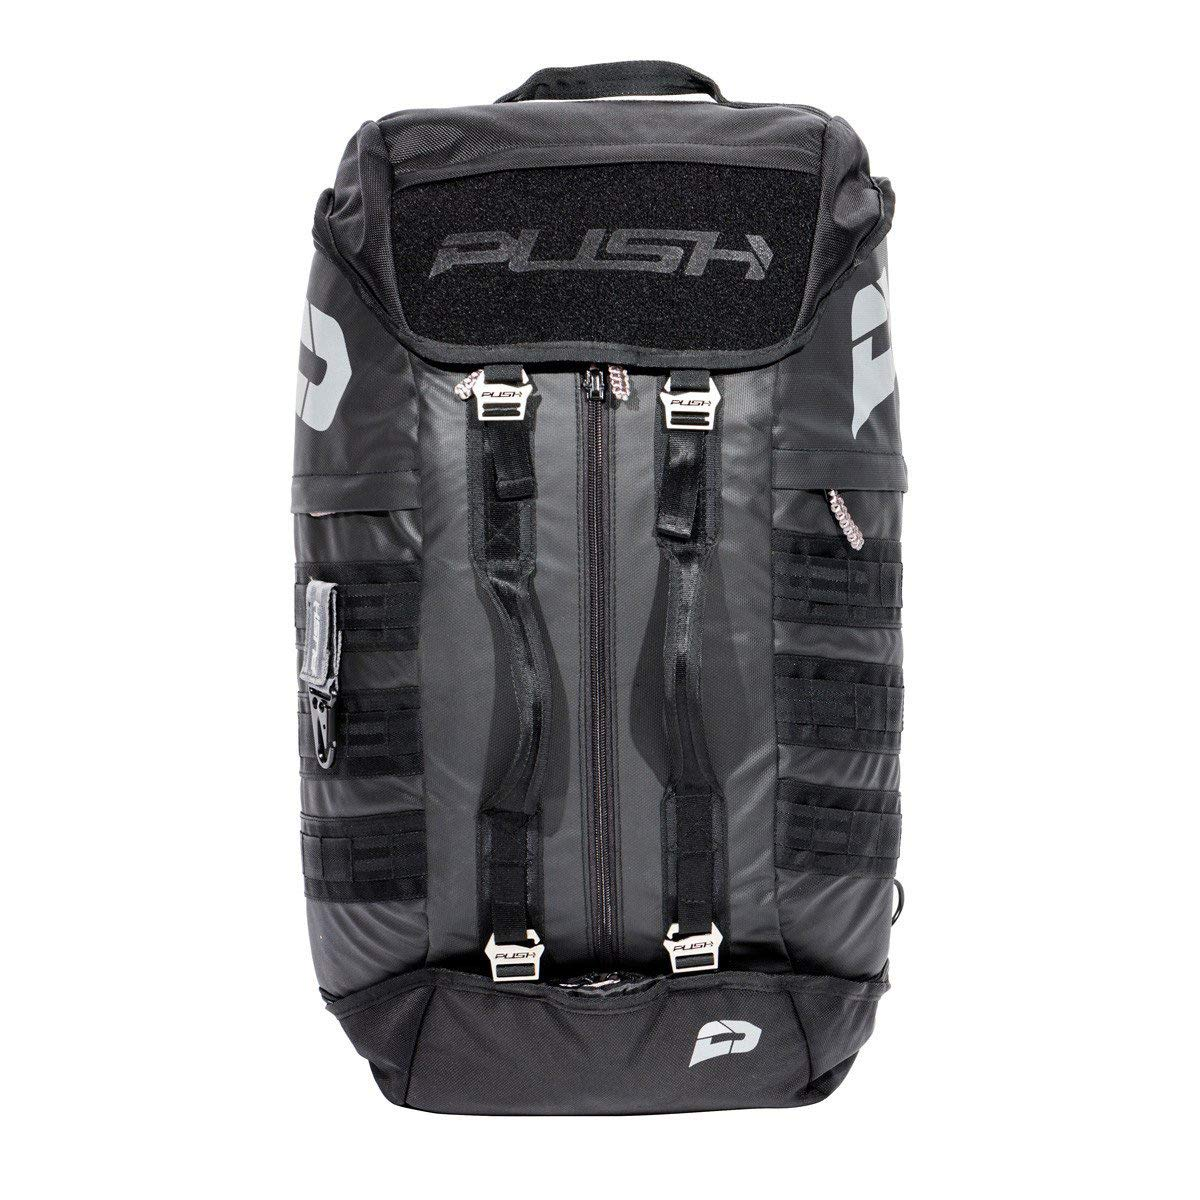 Push Division One GEARBAG Paintball Gear Bag - Black w/Black Straps by Push Paintball